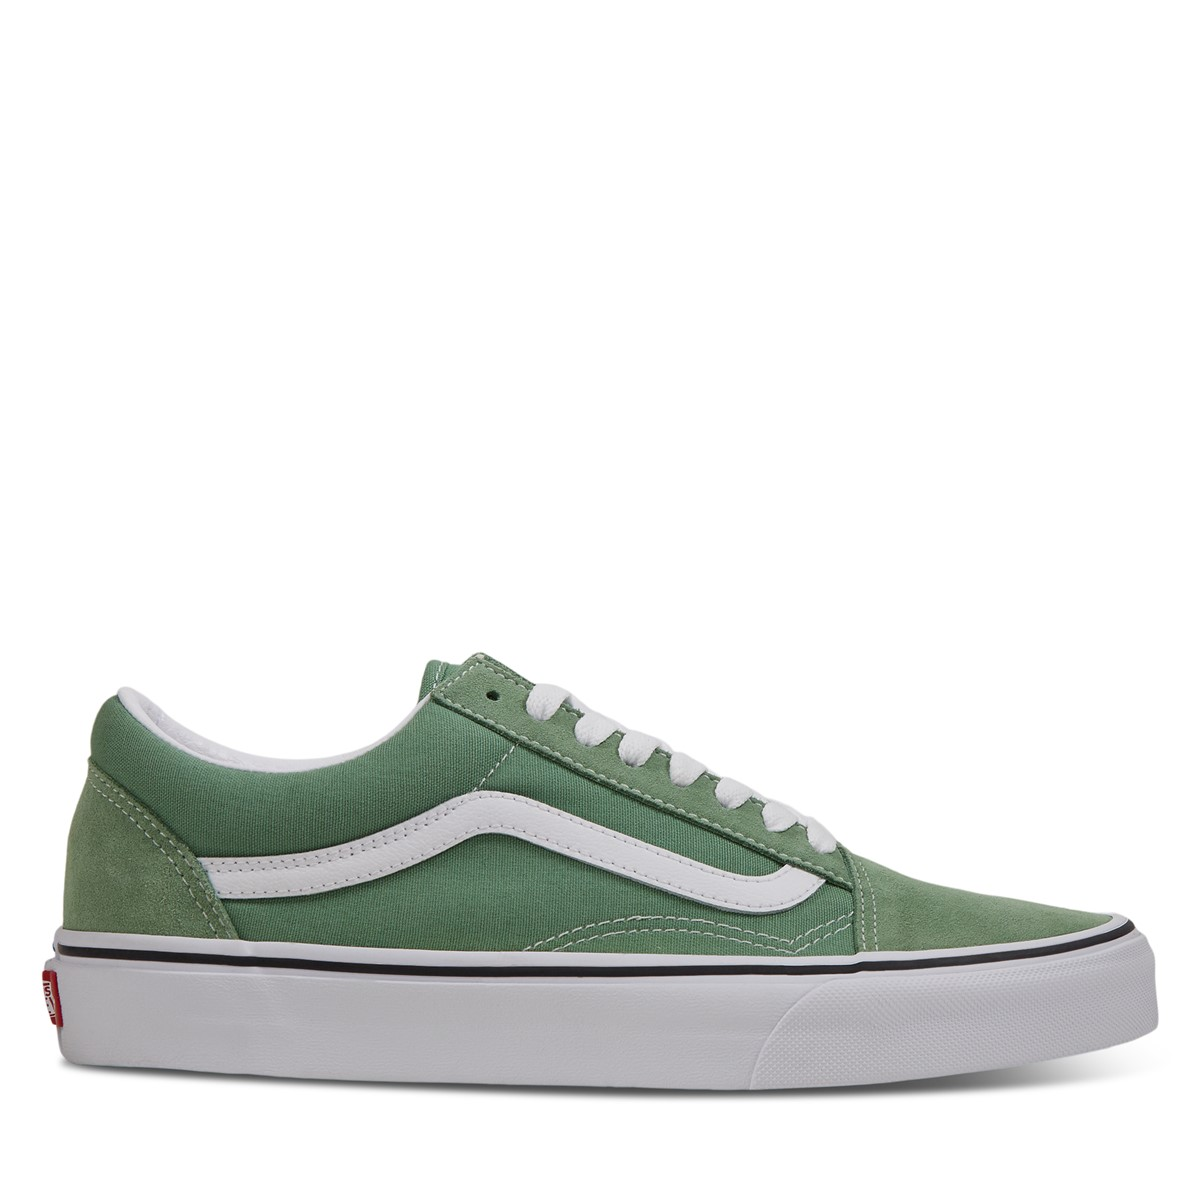 Old Skool Sneakers in Khaki